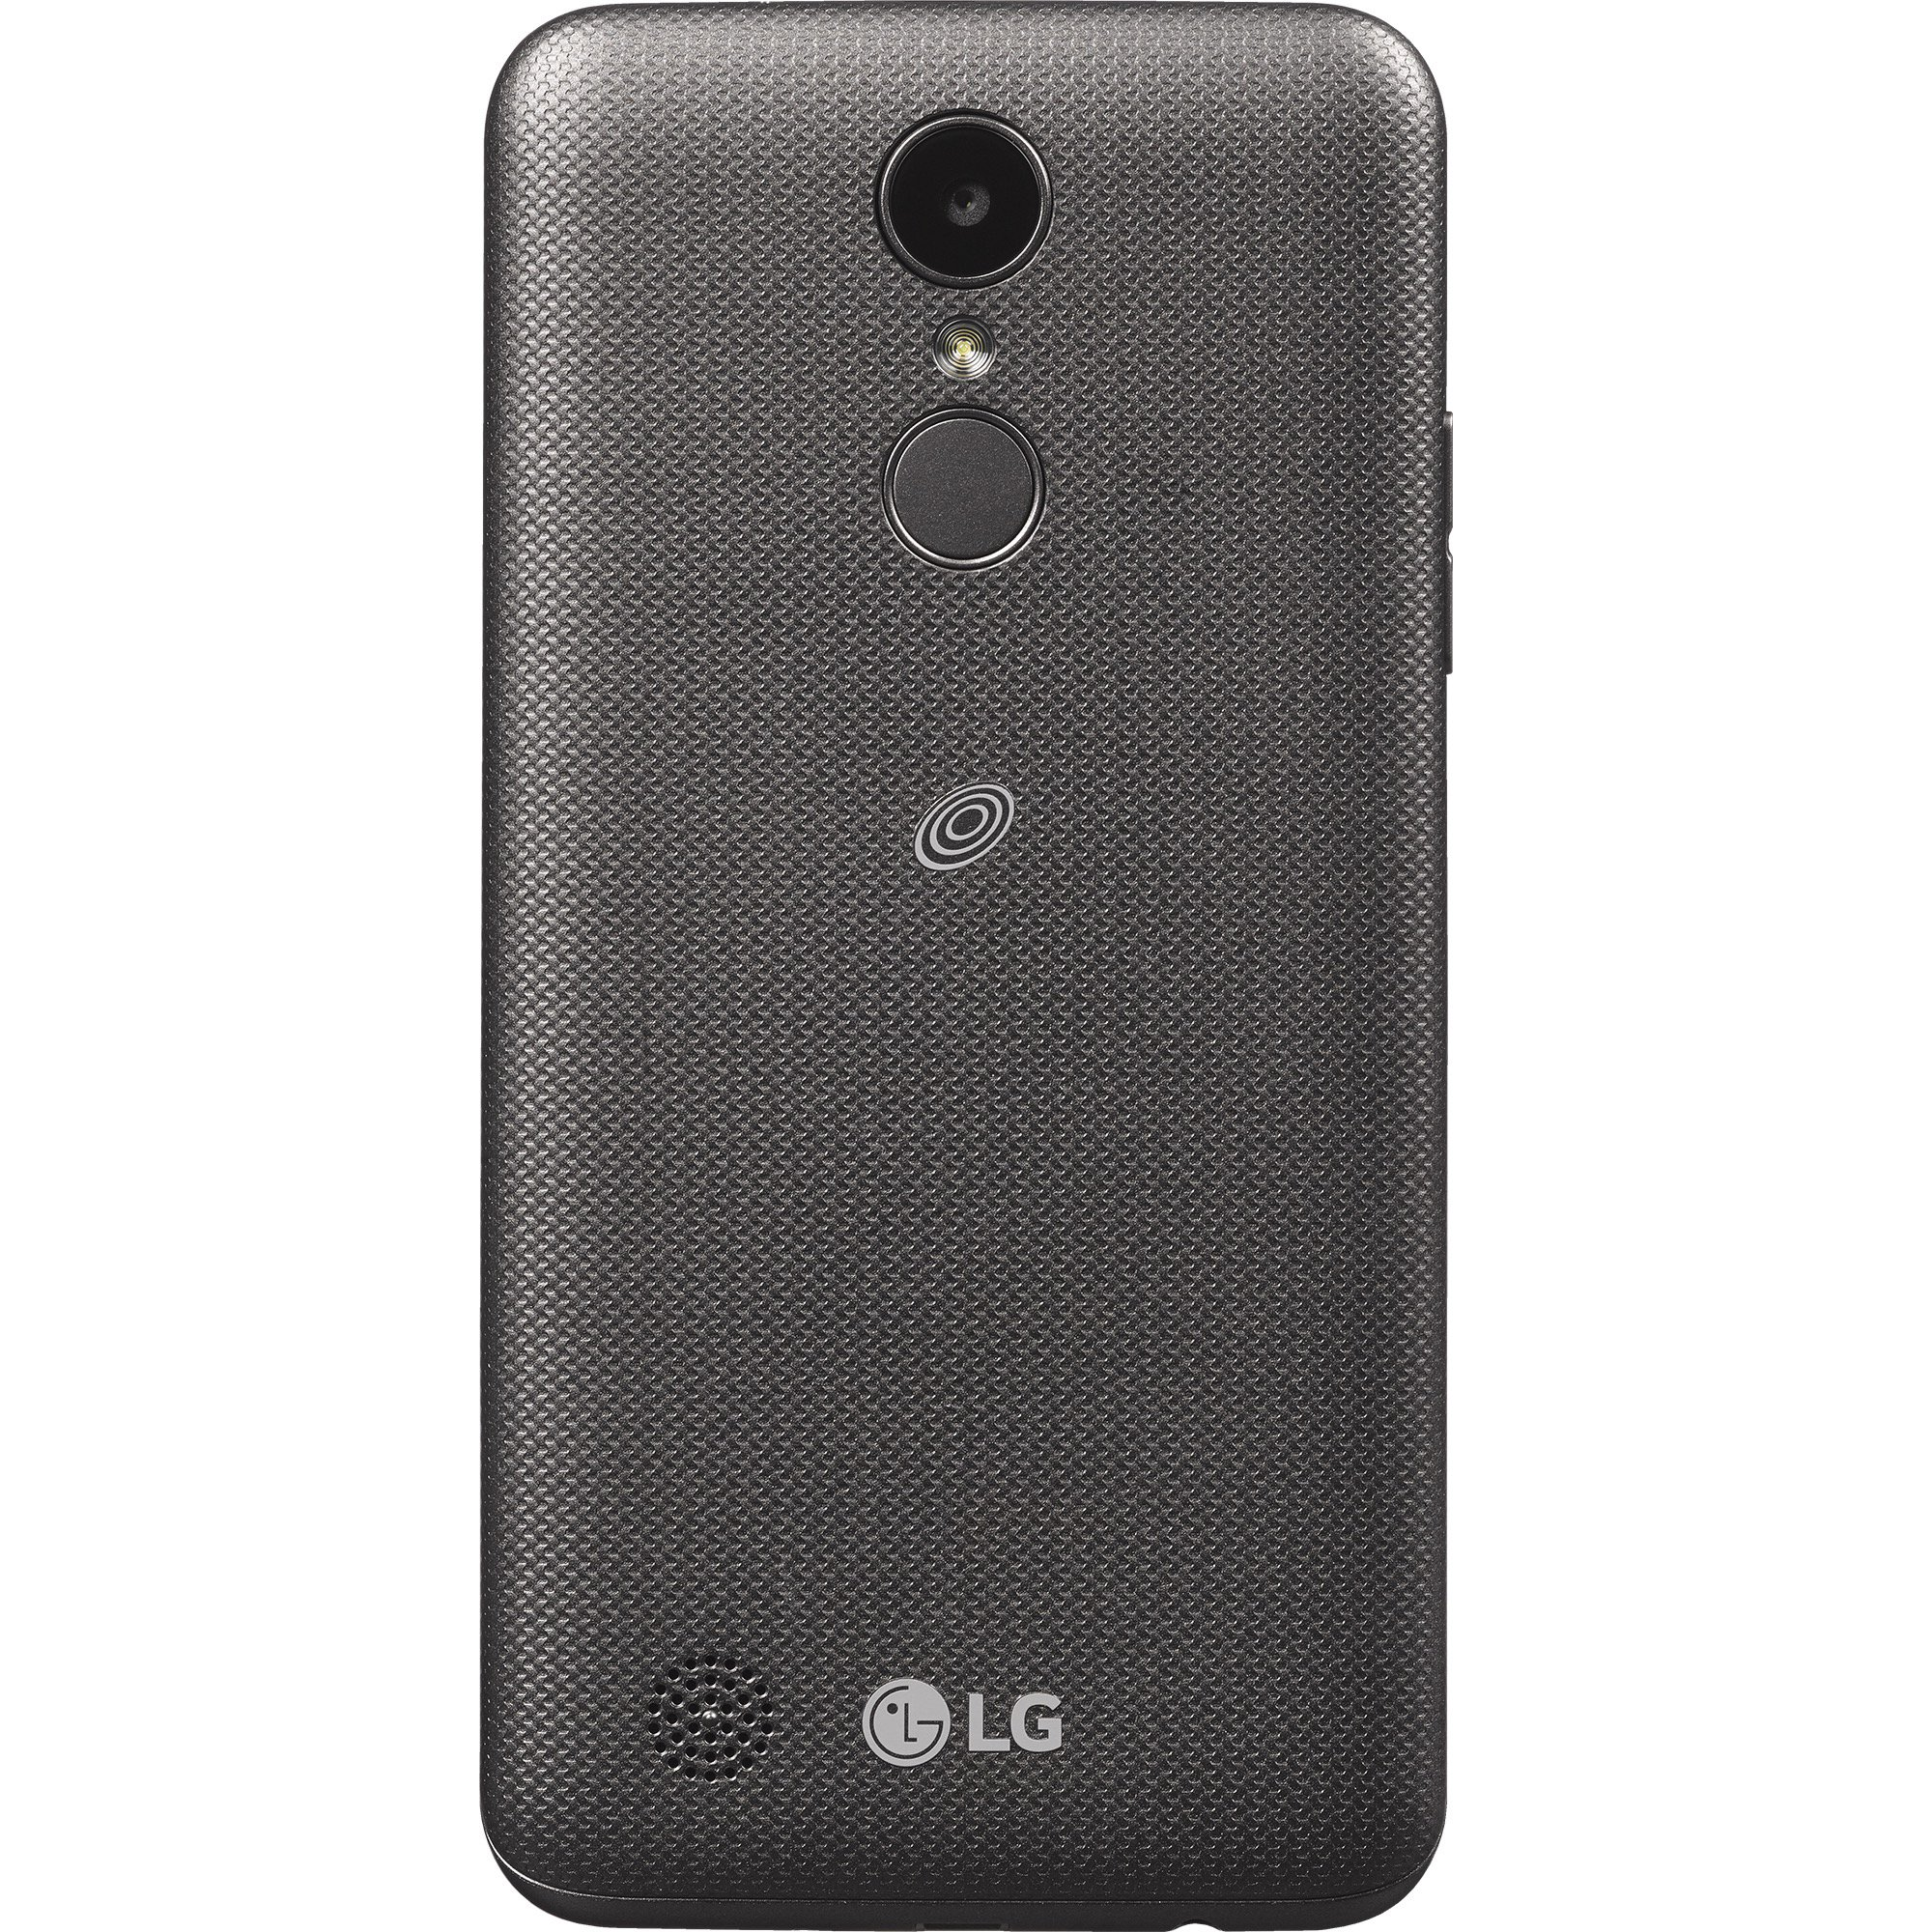 Net10 LG Rebel 3 4G LTE Prepaid Smartphone with Free $40 Airtime Bundle by TracFone (Image #2)